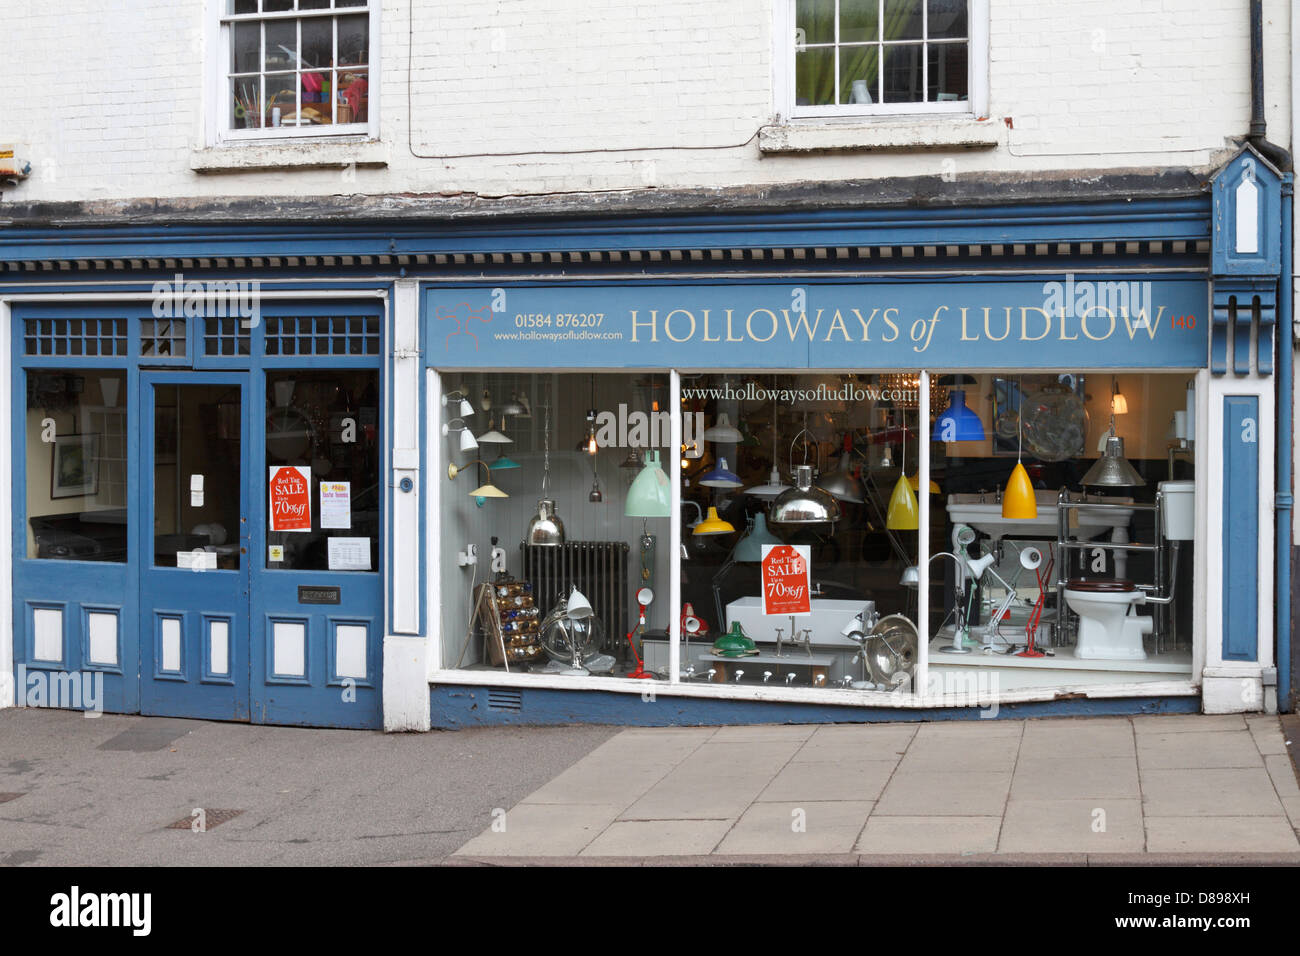 Holloways of Ludlow, an award winning supplier of bespoke kitchens, lighting, bathrooms and interior fixtures and - Stock Image